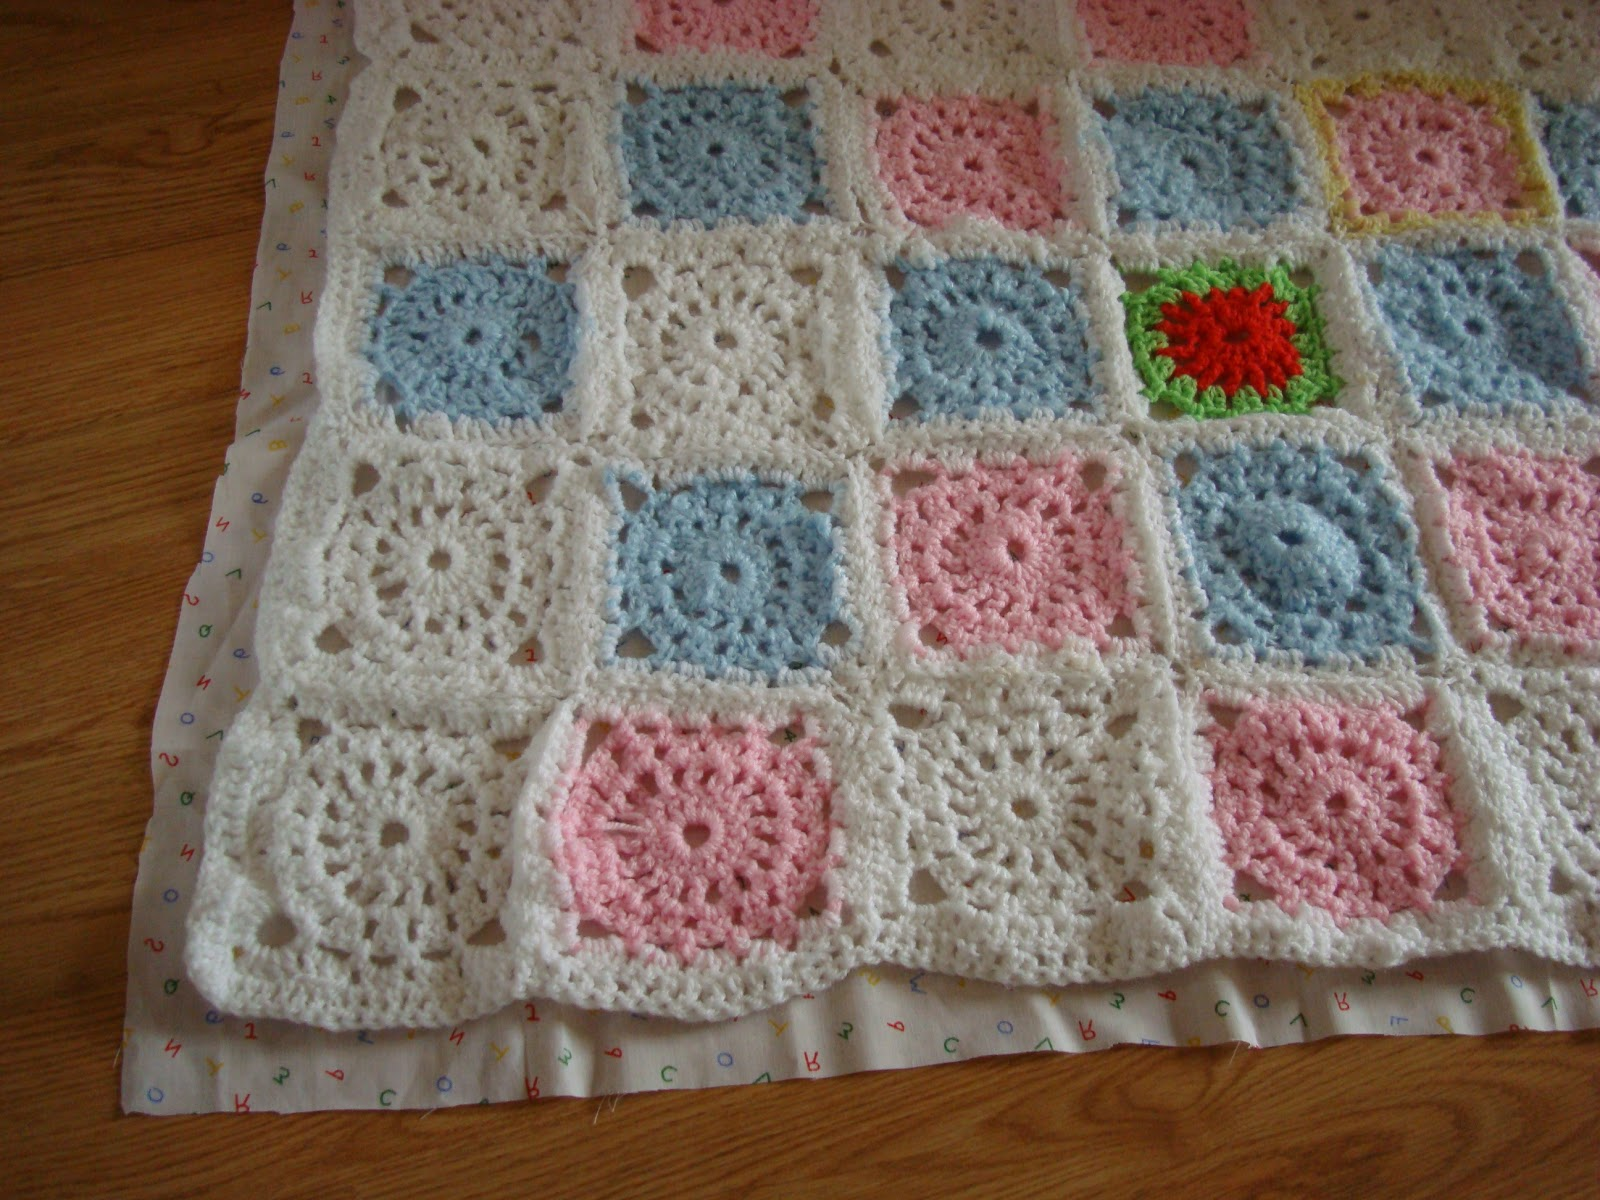 Crochet Blanket Using New Cake Yarn